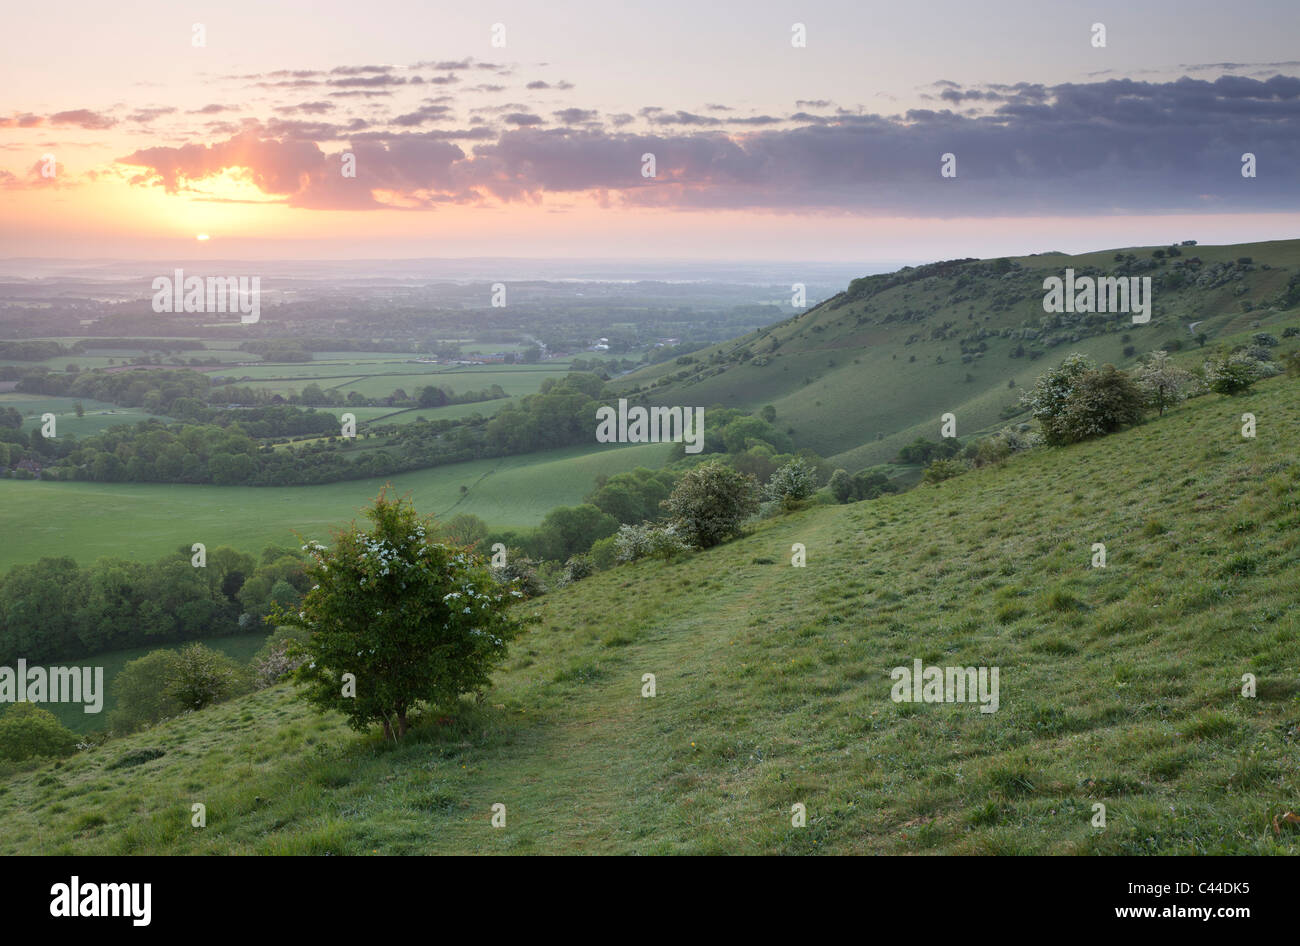 A beautiful sunrise over Ditchling Beacon, South Downs National Park, East Sussex, England, UK - Stock Image